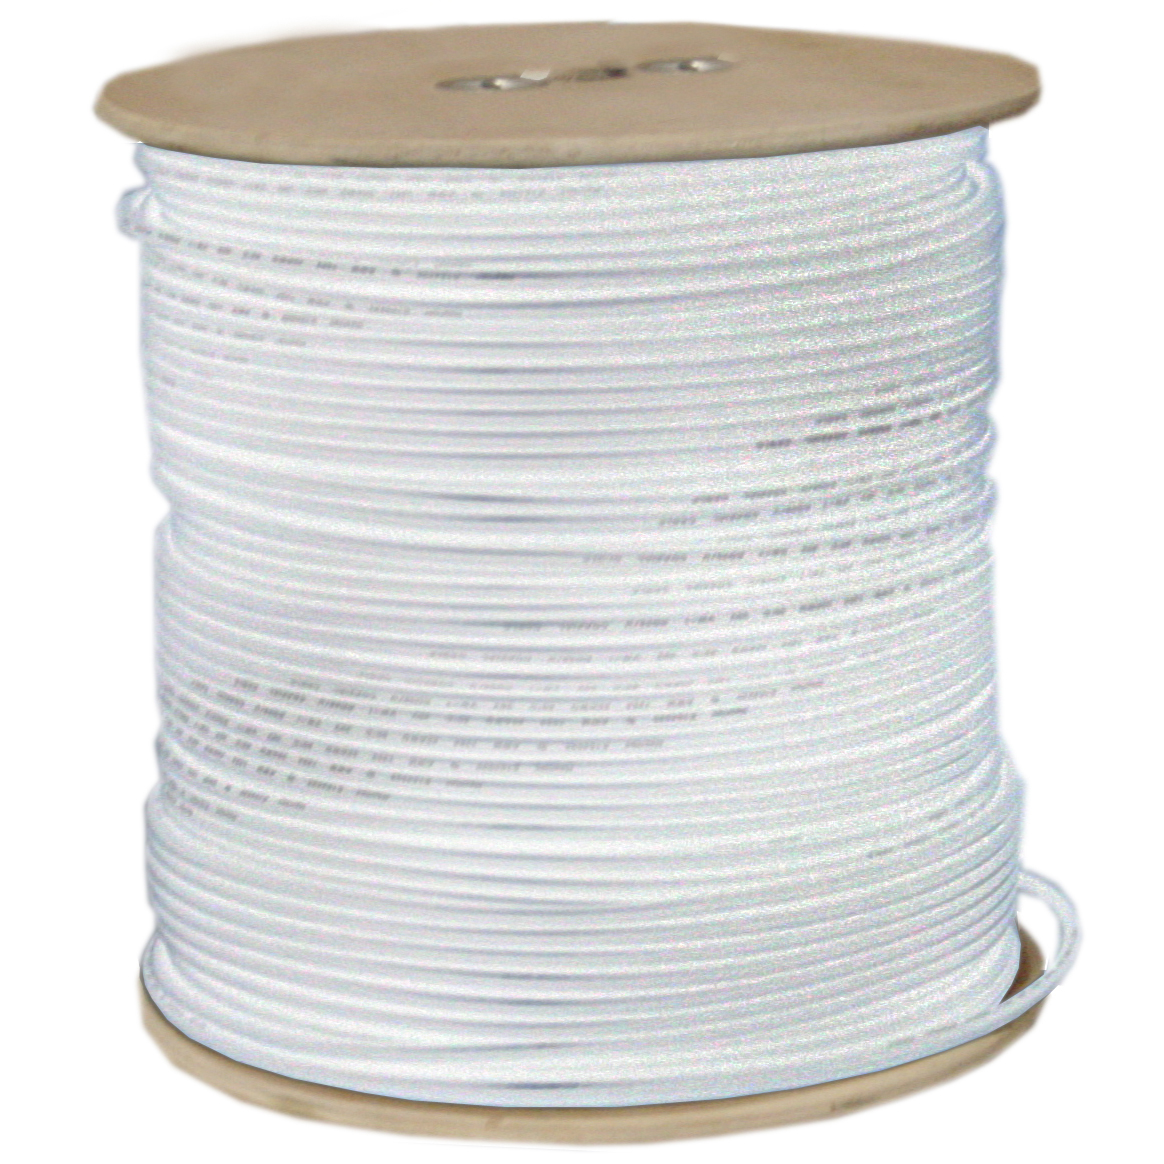 RG59 Siamese Plenum Solid Coaxial Cable + 18/2 (18AWG 2C) Power, White, Spool, 1000 ft - 11X3-18291NH - 11X3-18291NH